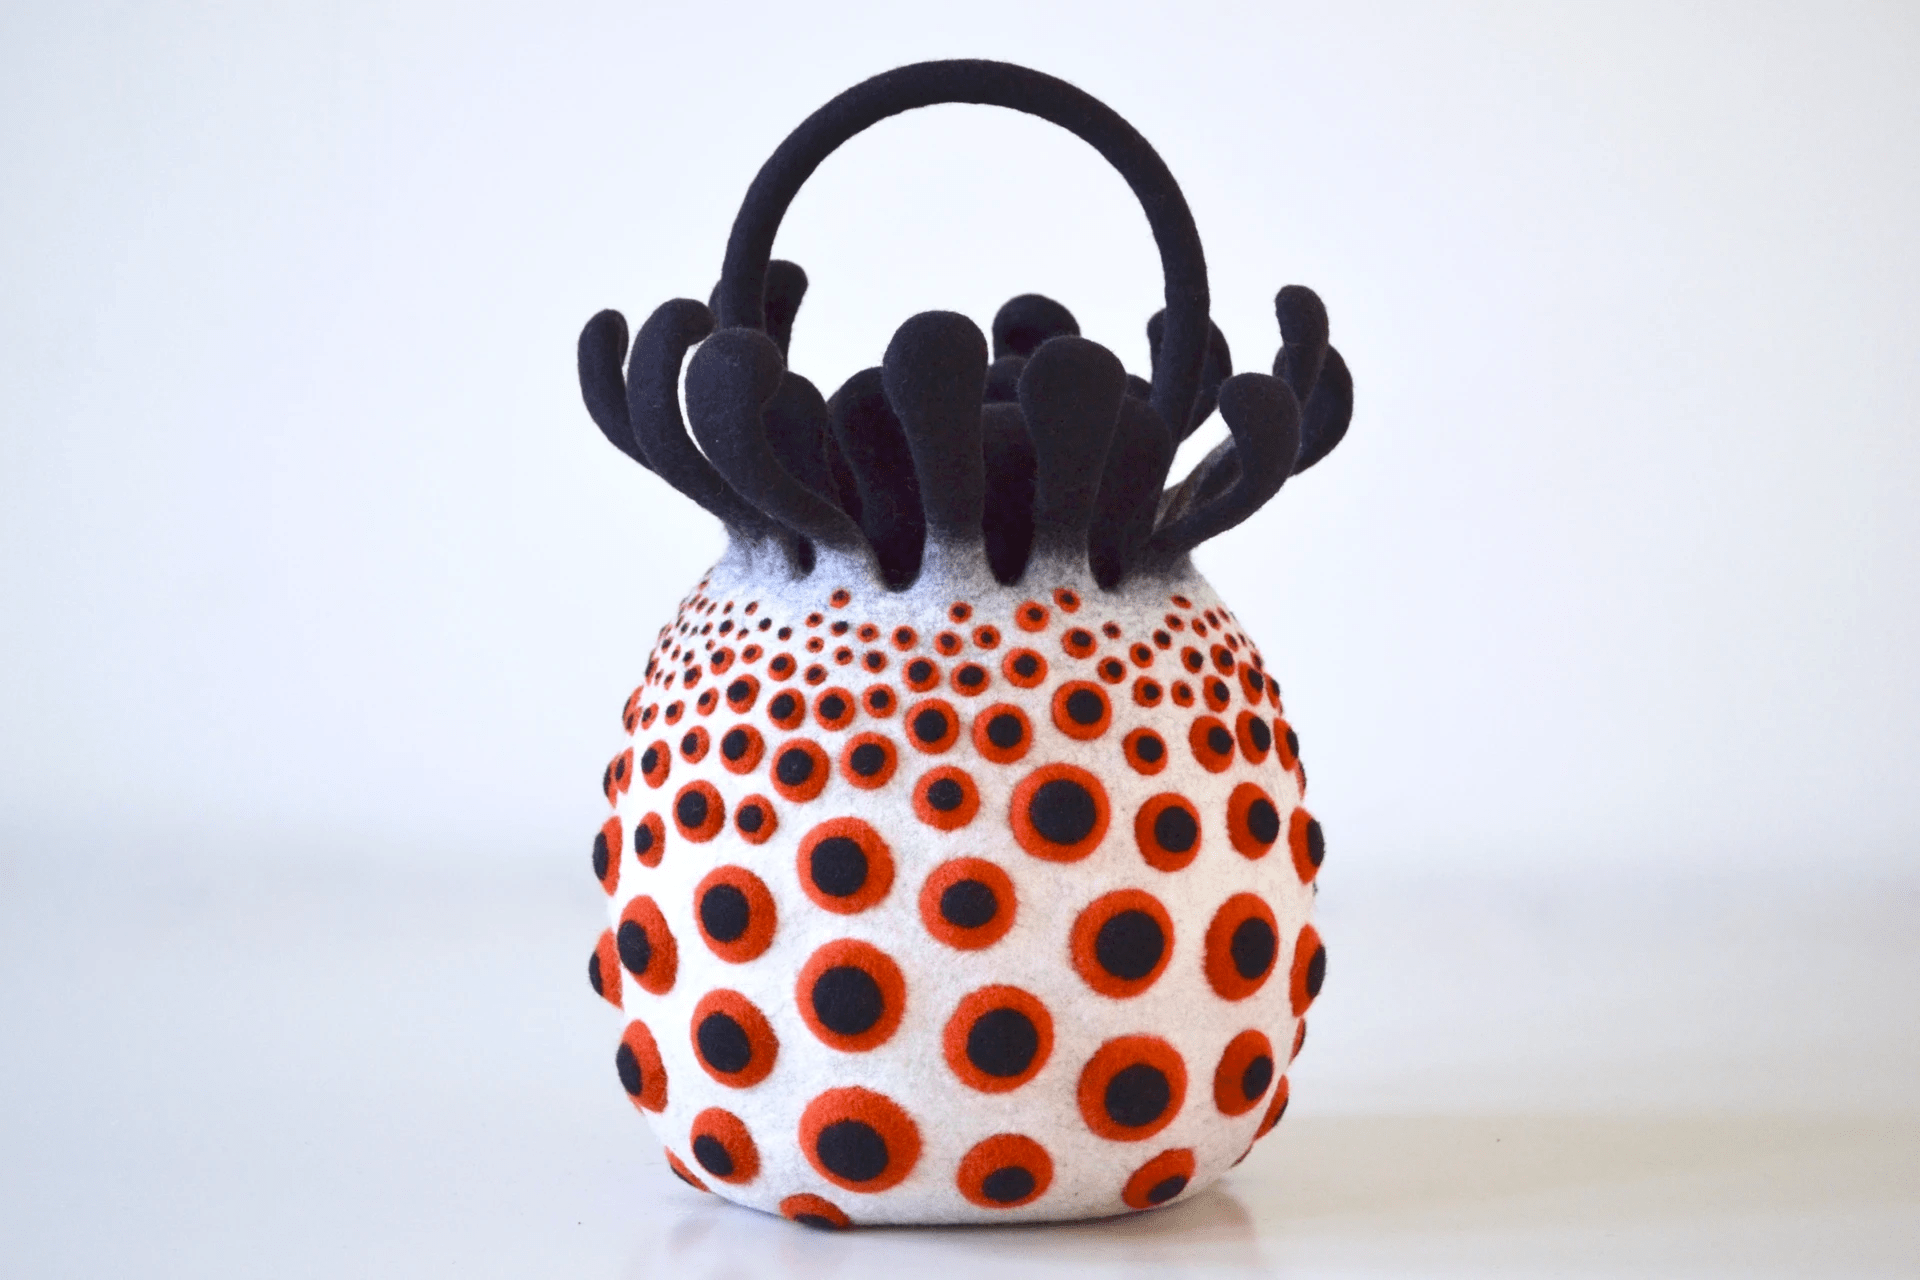 Fine Artist Atsuko Sasaki Makes Incredible Felt Object Bags That Are Nothing Short Of Eye-Popping ...